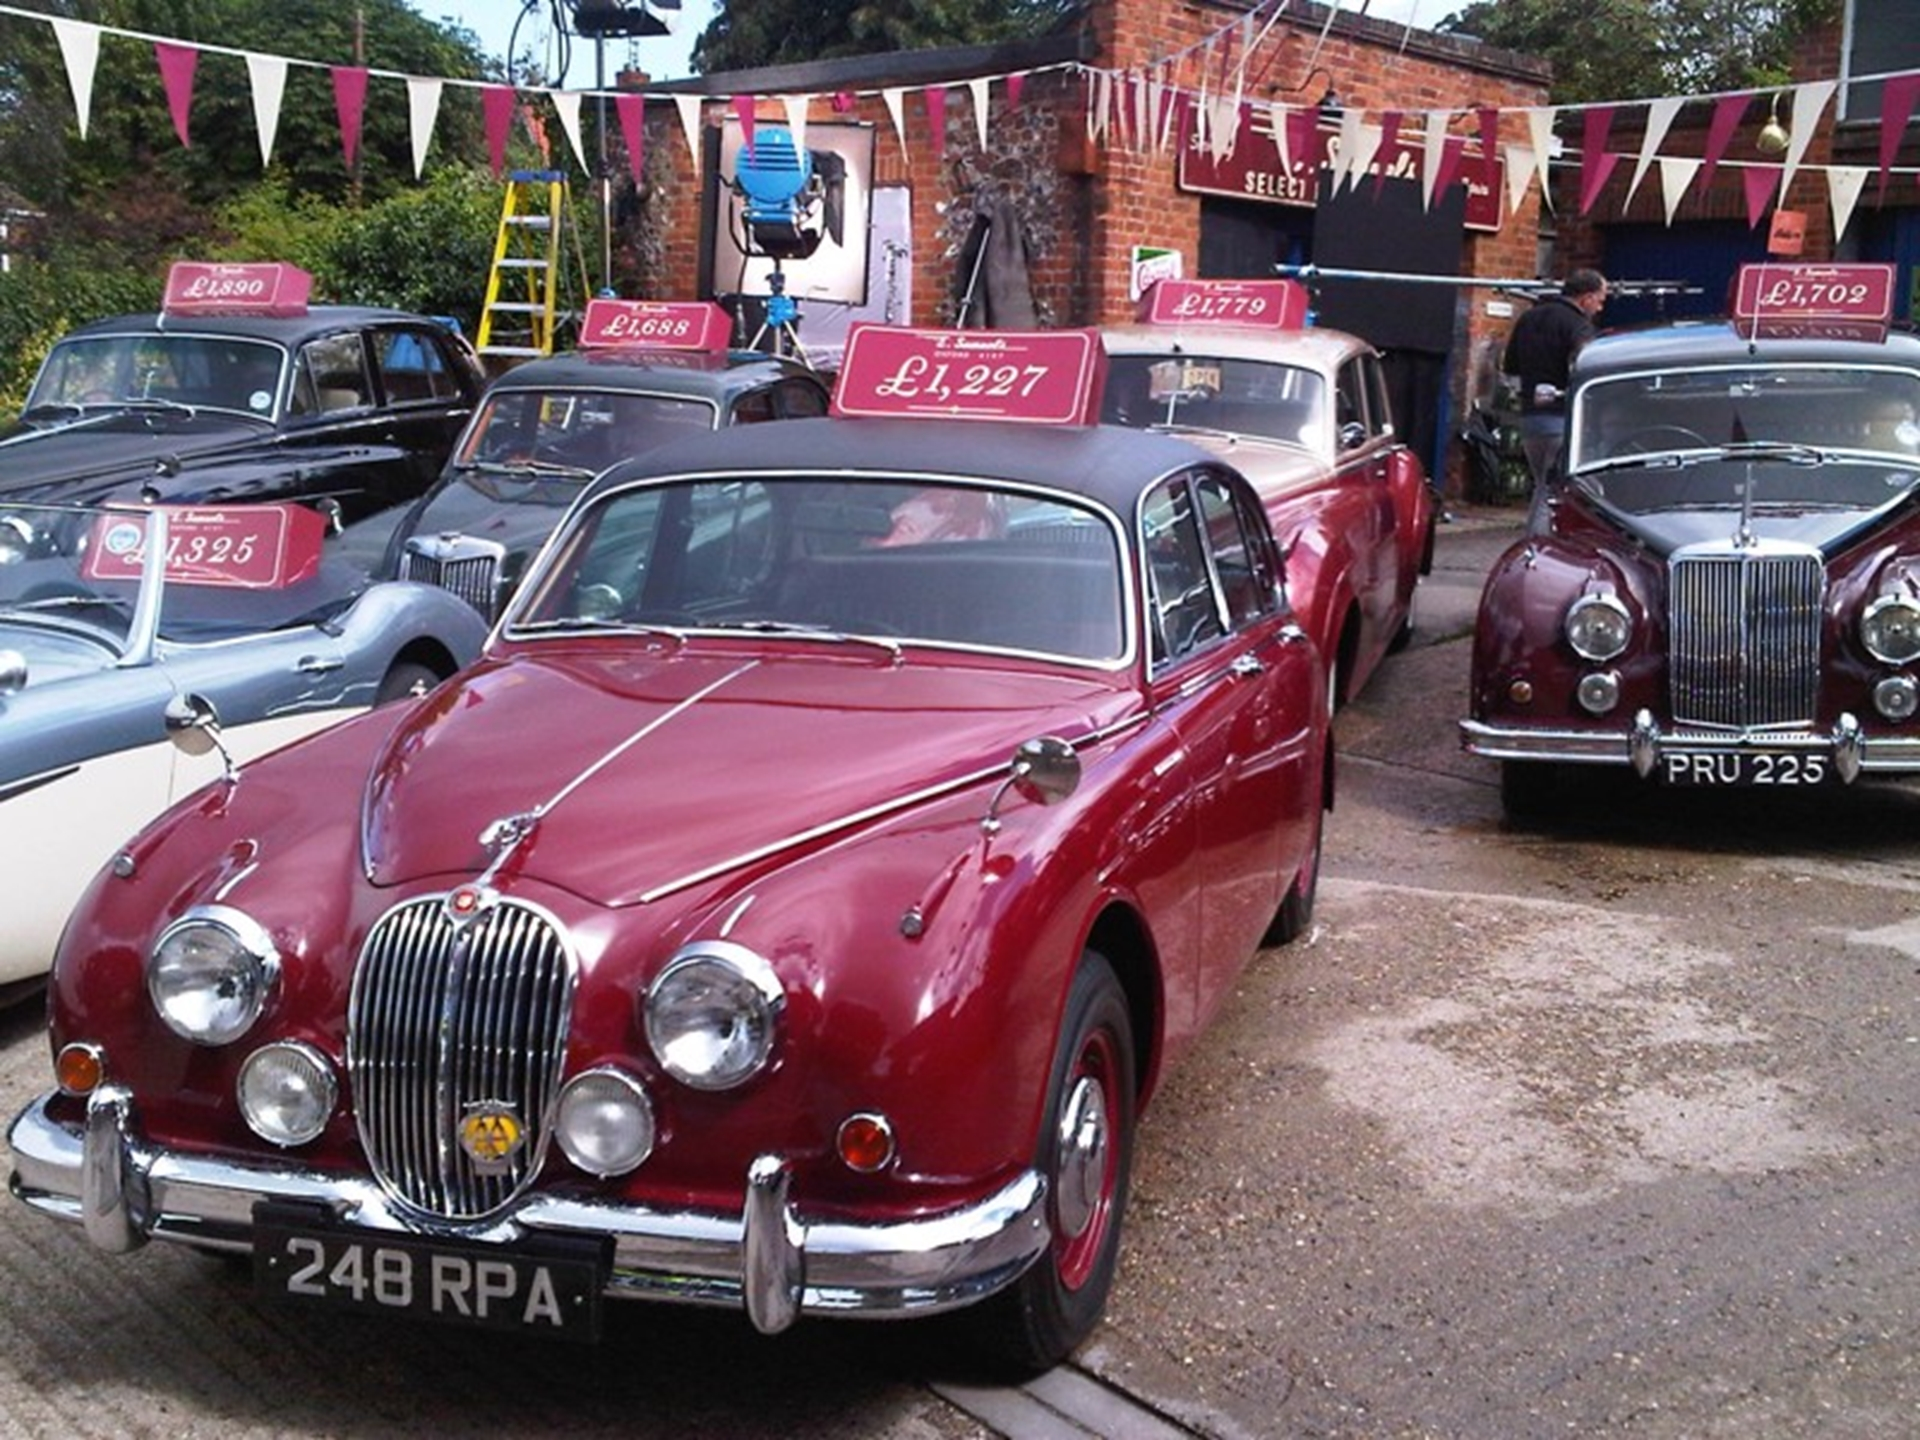 The famous burgundy red Mk II Jaguar